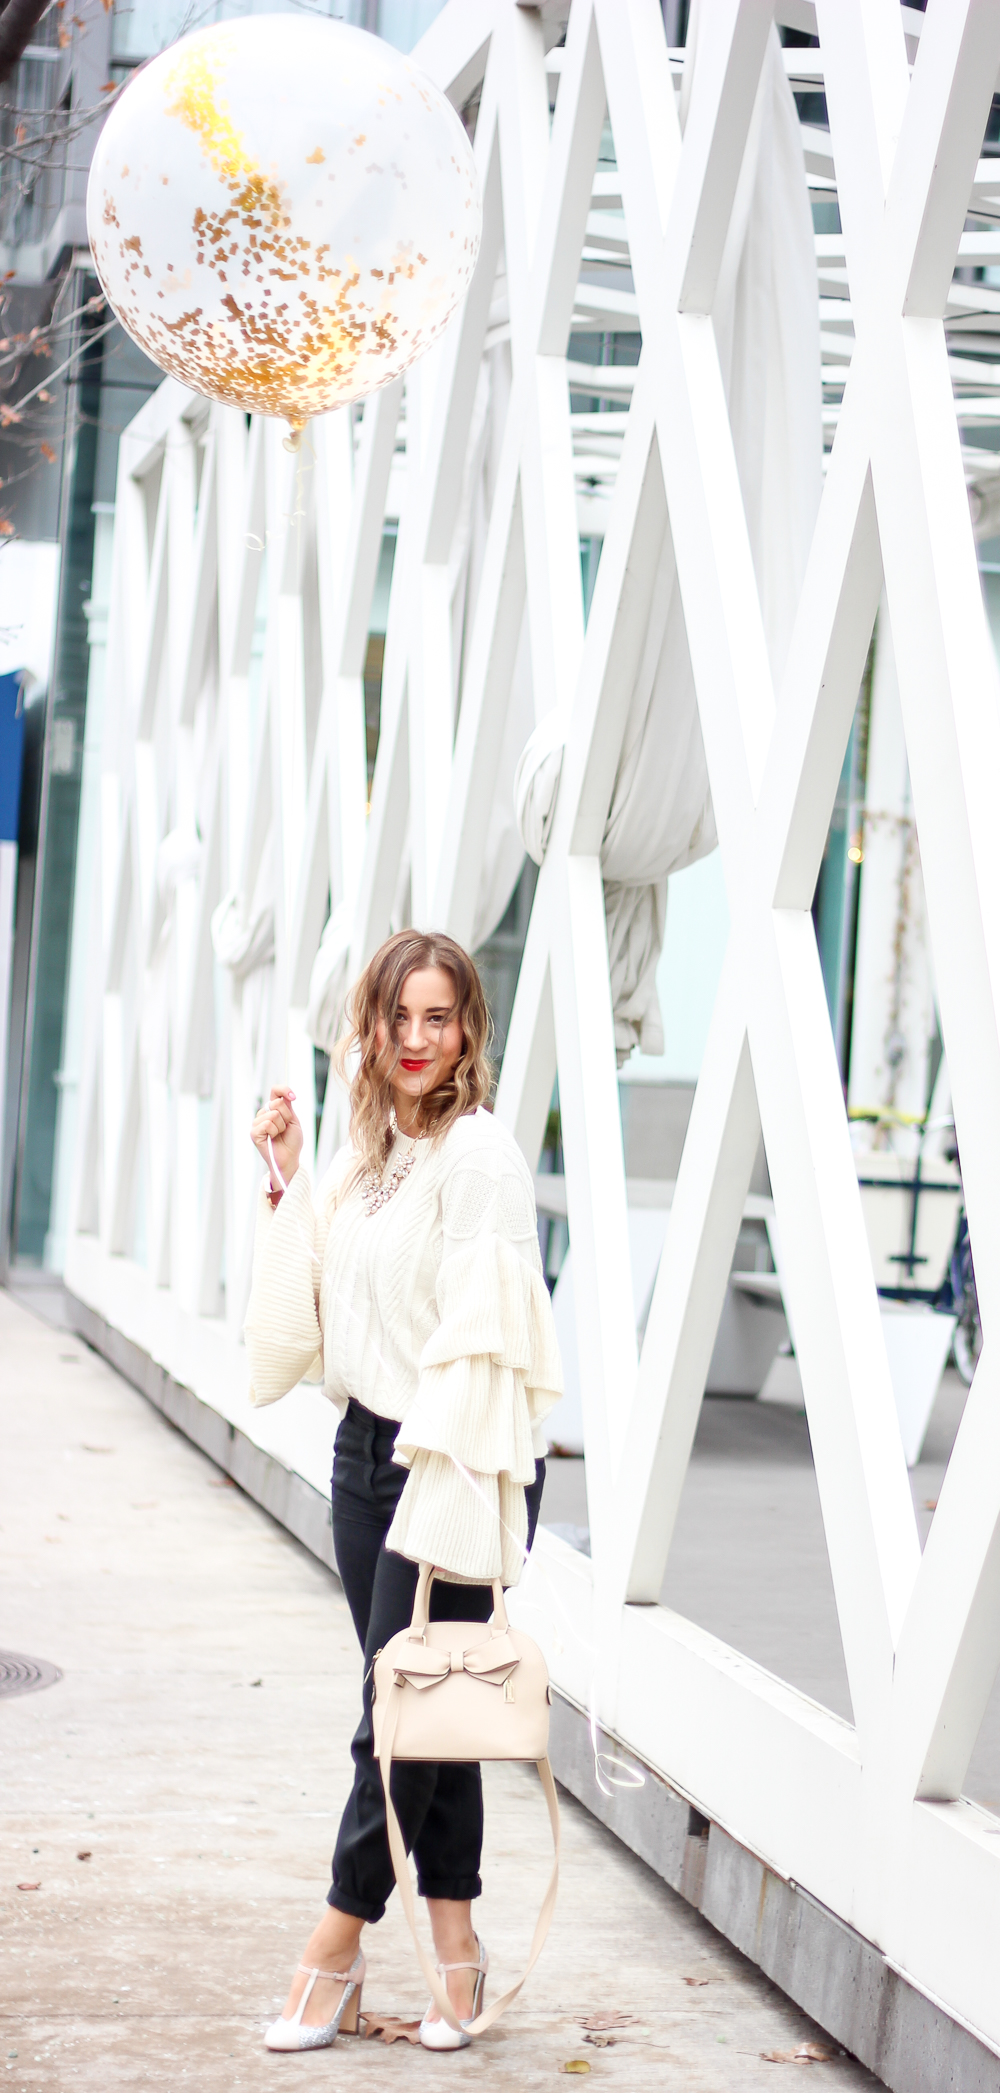 Canadian fashion and lifestyle blogger from Something About That, shares her tips to stay motivated all year